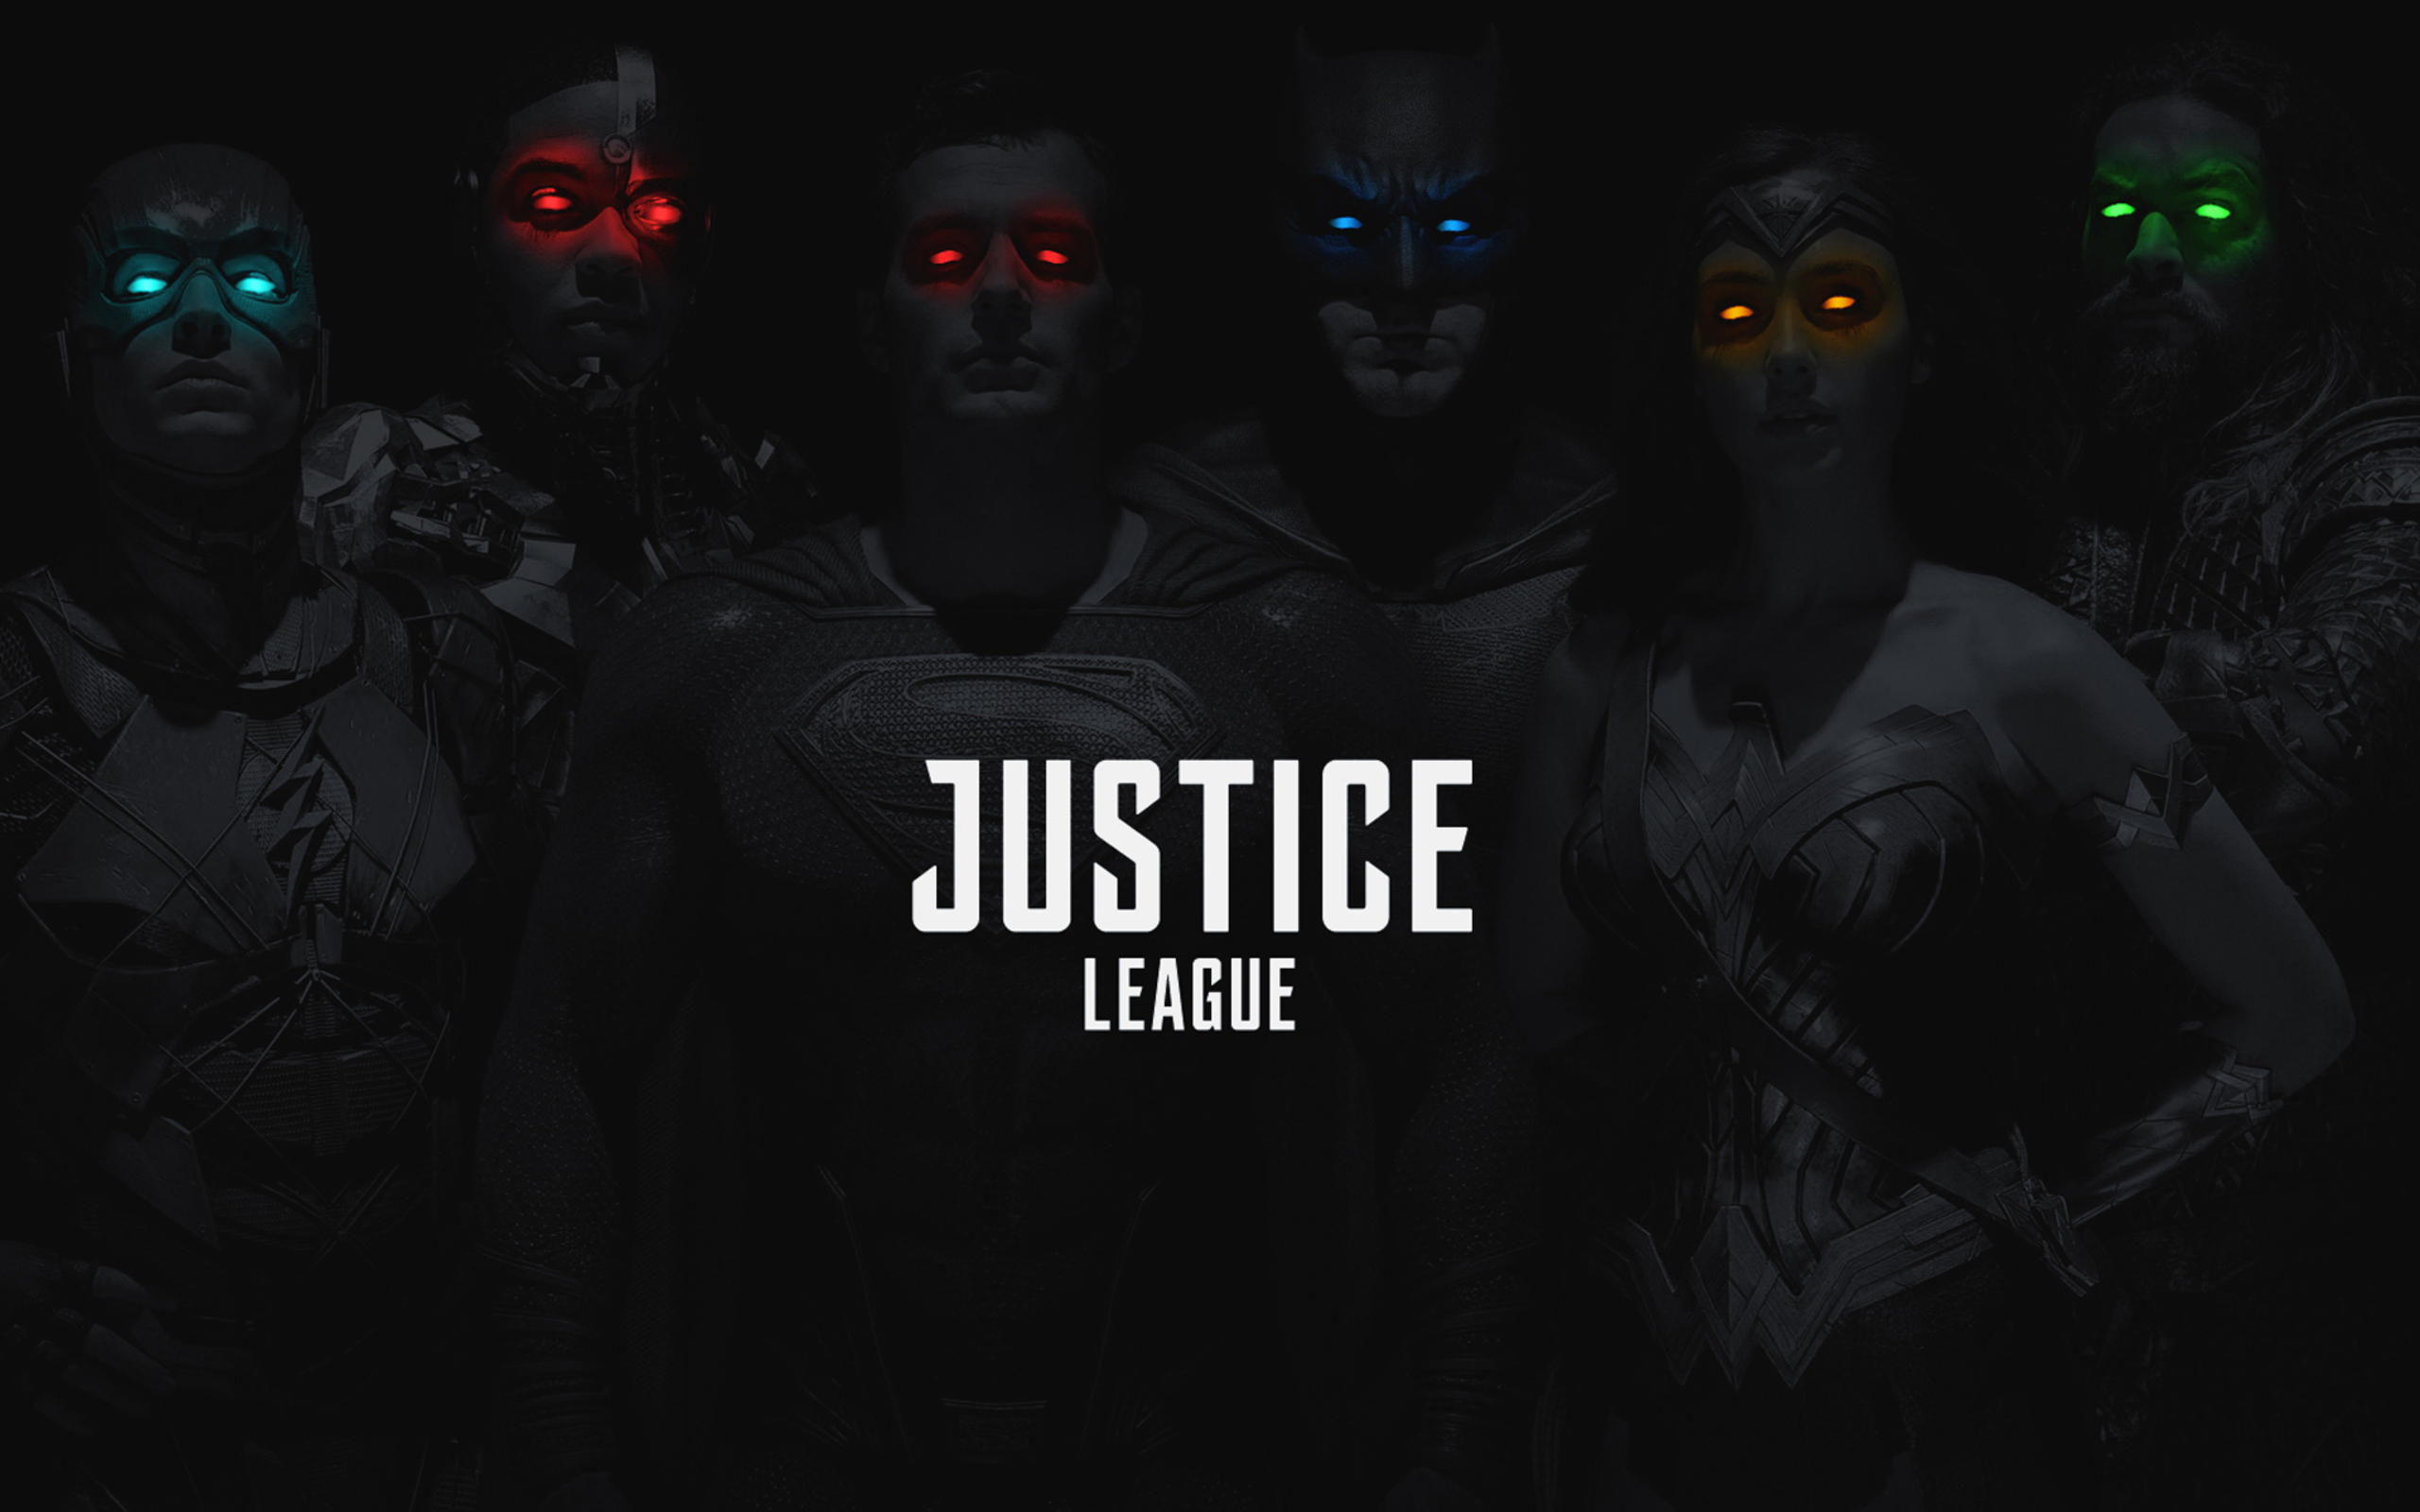 justice-league-2017-monochrome-colored-eyes-pe.jpg